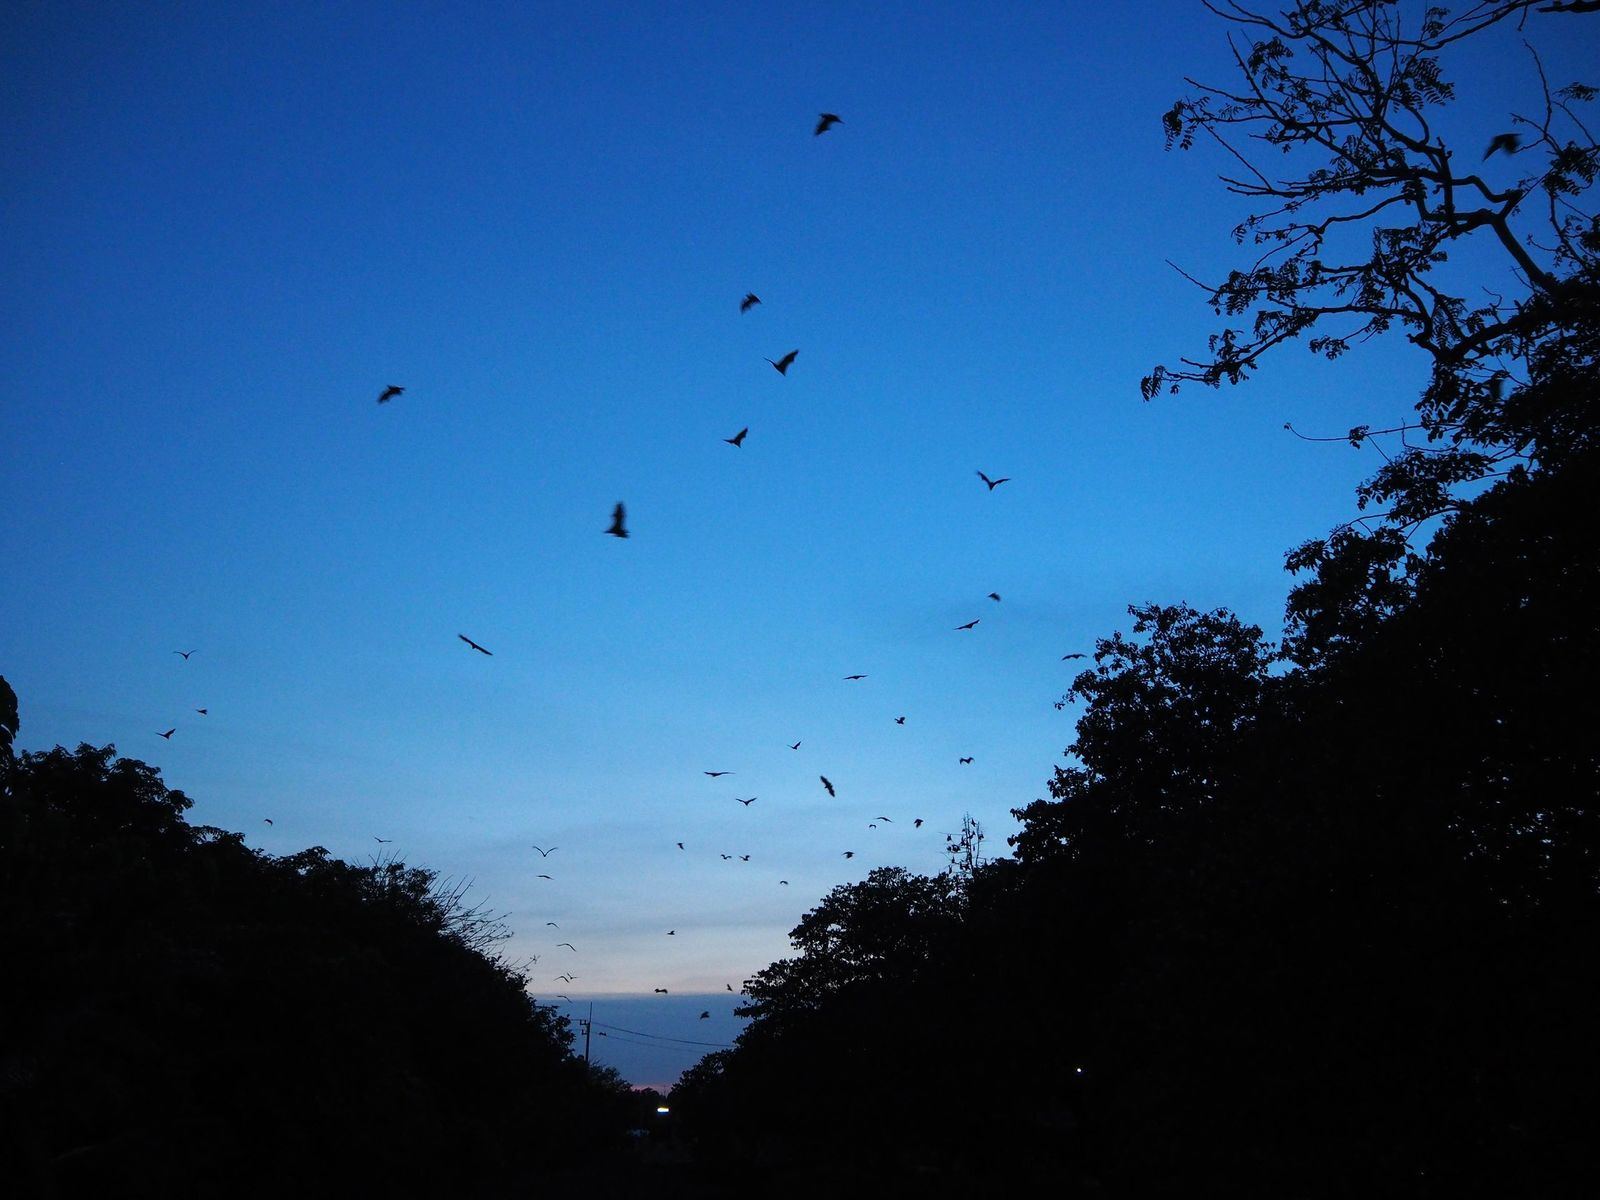 Thousands of fruit bats fly at dusk to feed off the fruit trees in the nearby ...